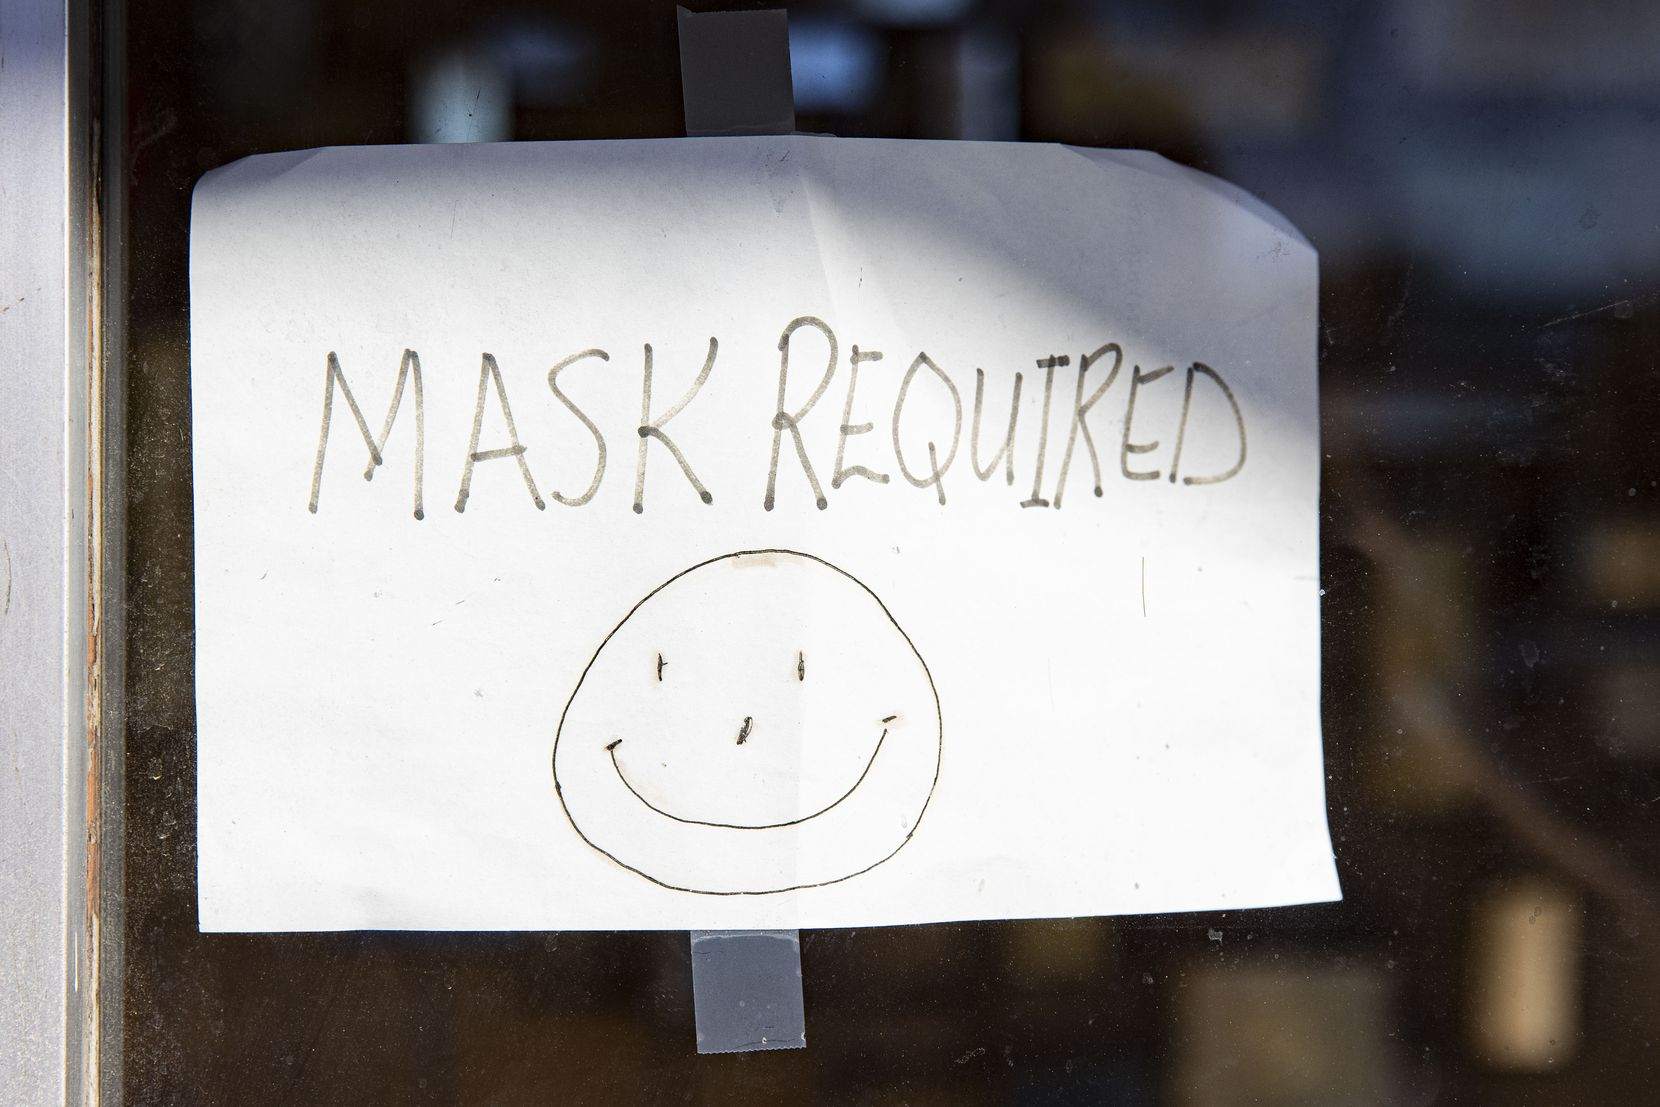 A hand drawn mask required sign at Oliver's Hair Replacements on Greenville Ave. in Dallas on Tuesday, March 2, 2021. Gov. Greg Abbott announced that all business can reopen at 100 percent capacity and also ended the mask mandate starting next week. (Juan Figueroa/ The Dallas Morning News)